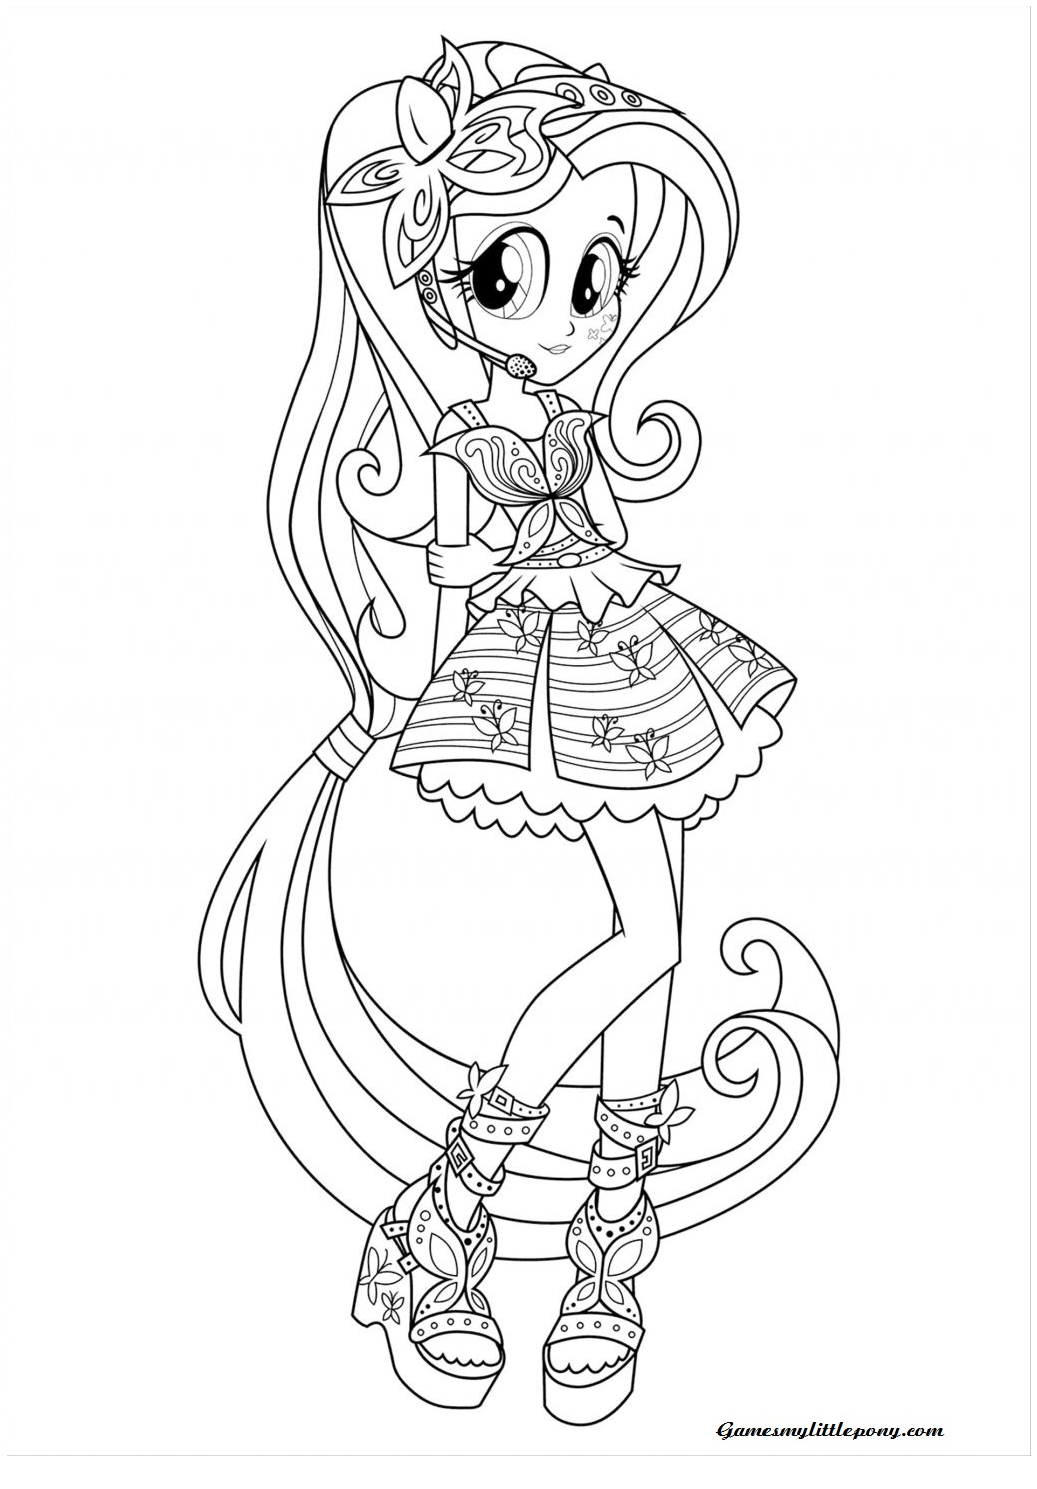 Rainbow Dash Equestria Girl Coloring Page